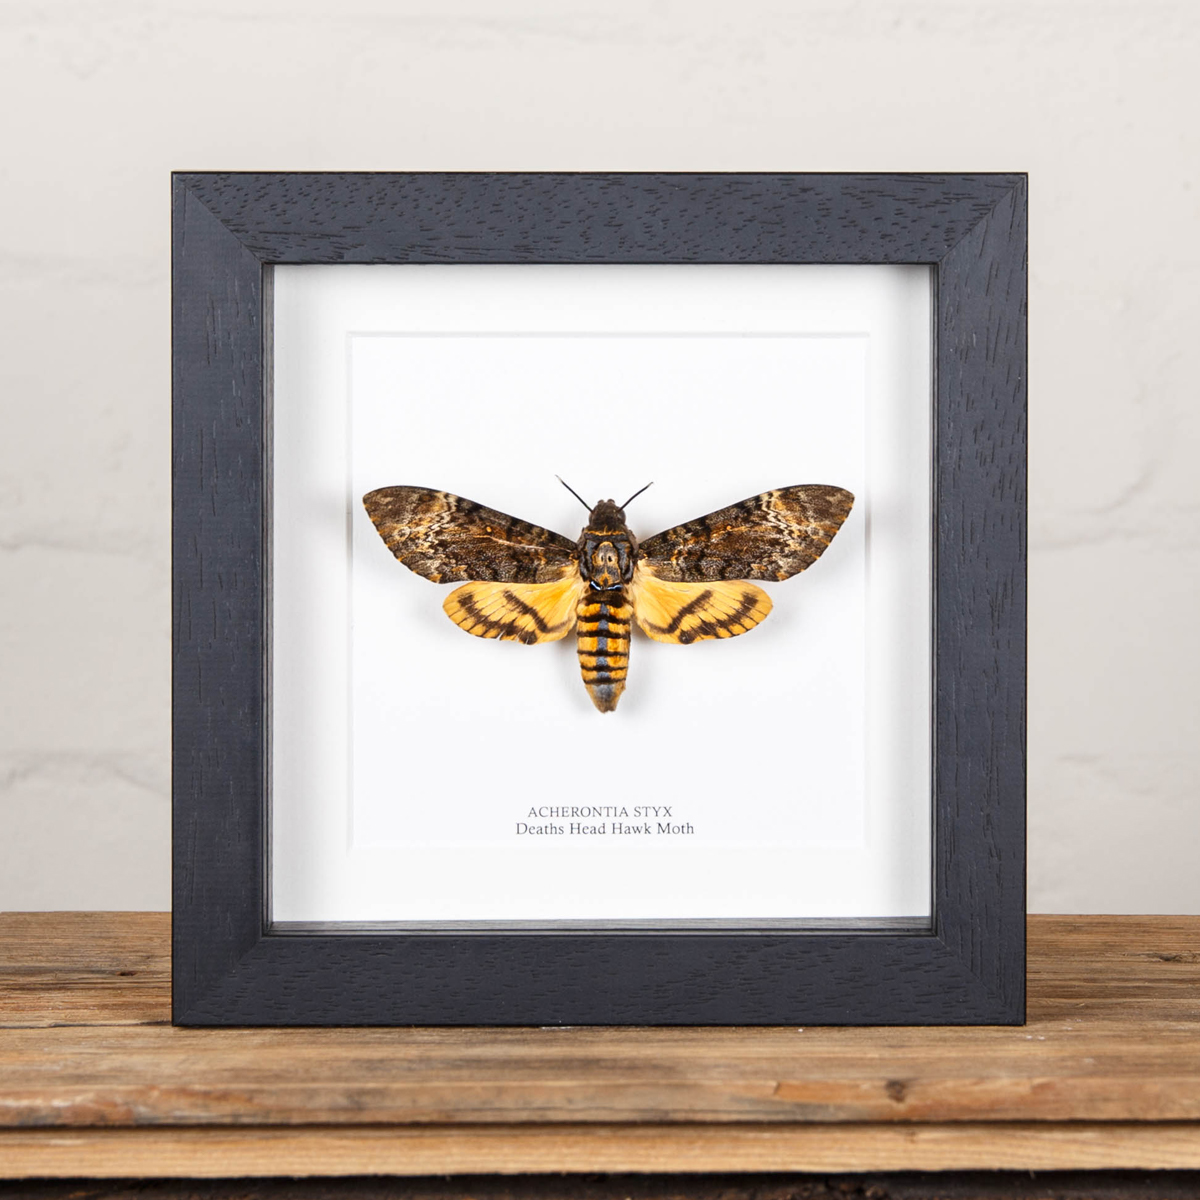 Deaths Head Hawk Moth Silence of the Lambs in Box Frame (Acherontia styx)